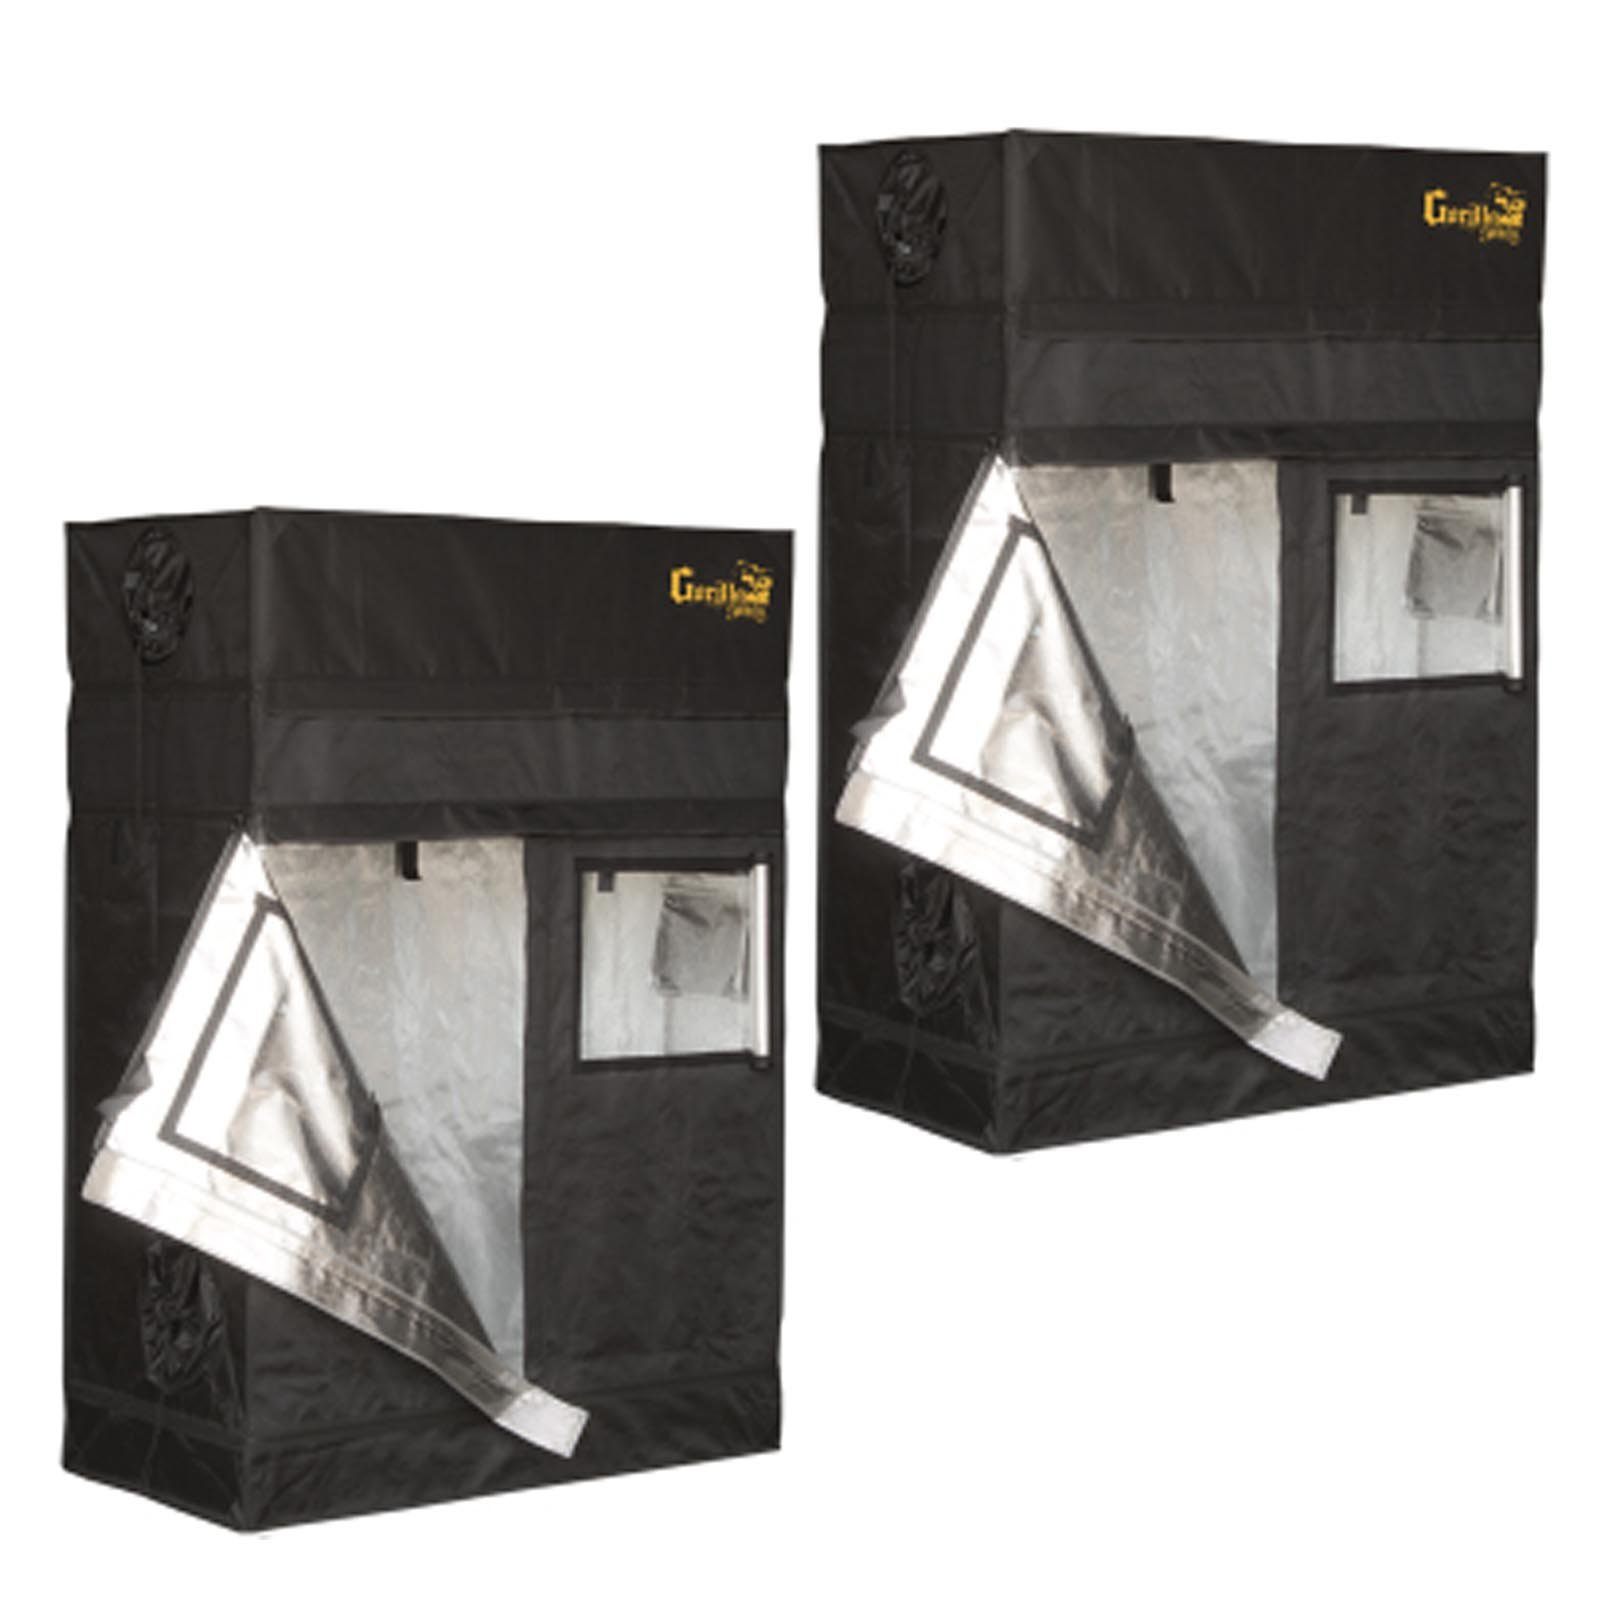 Gorilla Shorty 2' x 4' Grow Tent Hydroponic Greenhouse Garden, Pair | GGTSH24